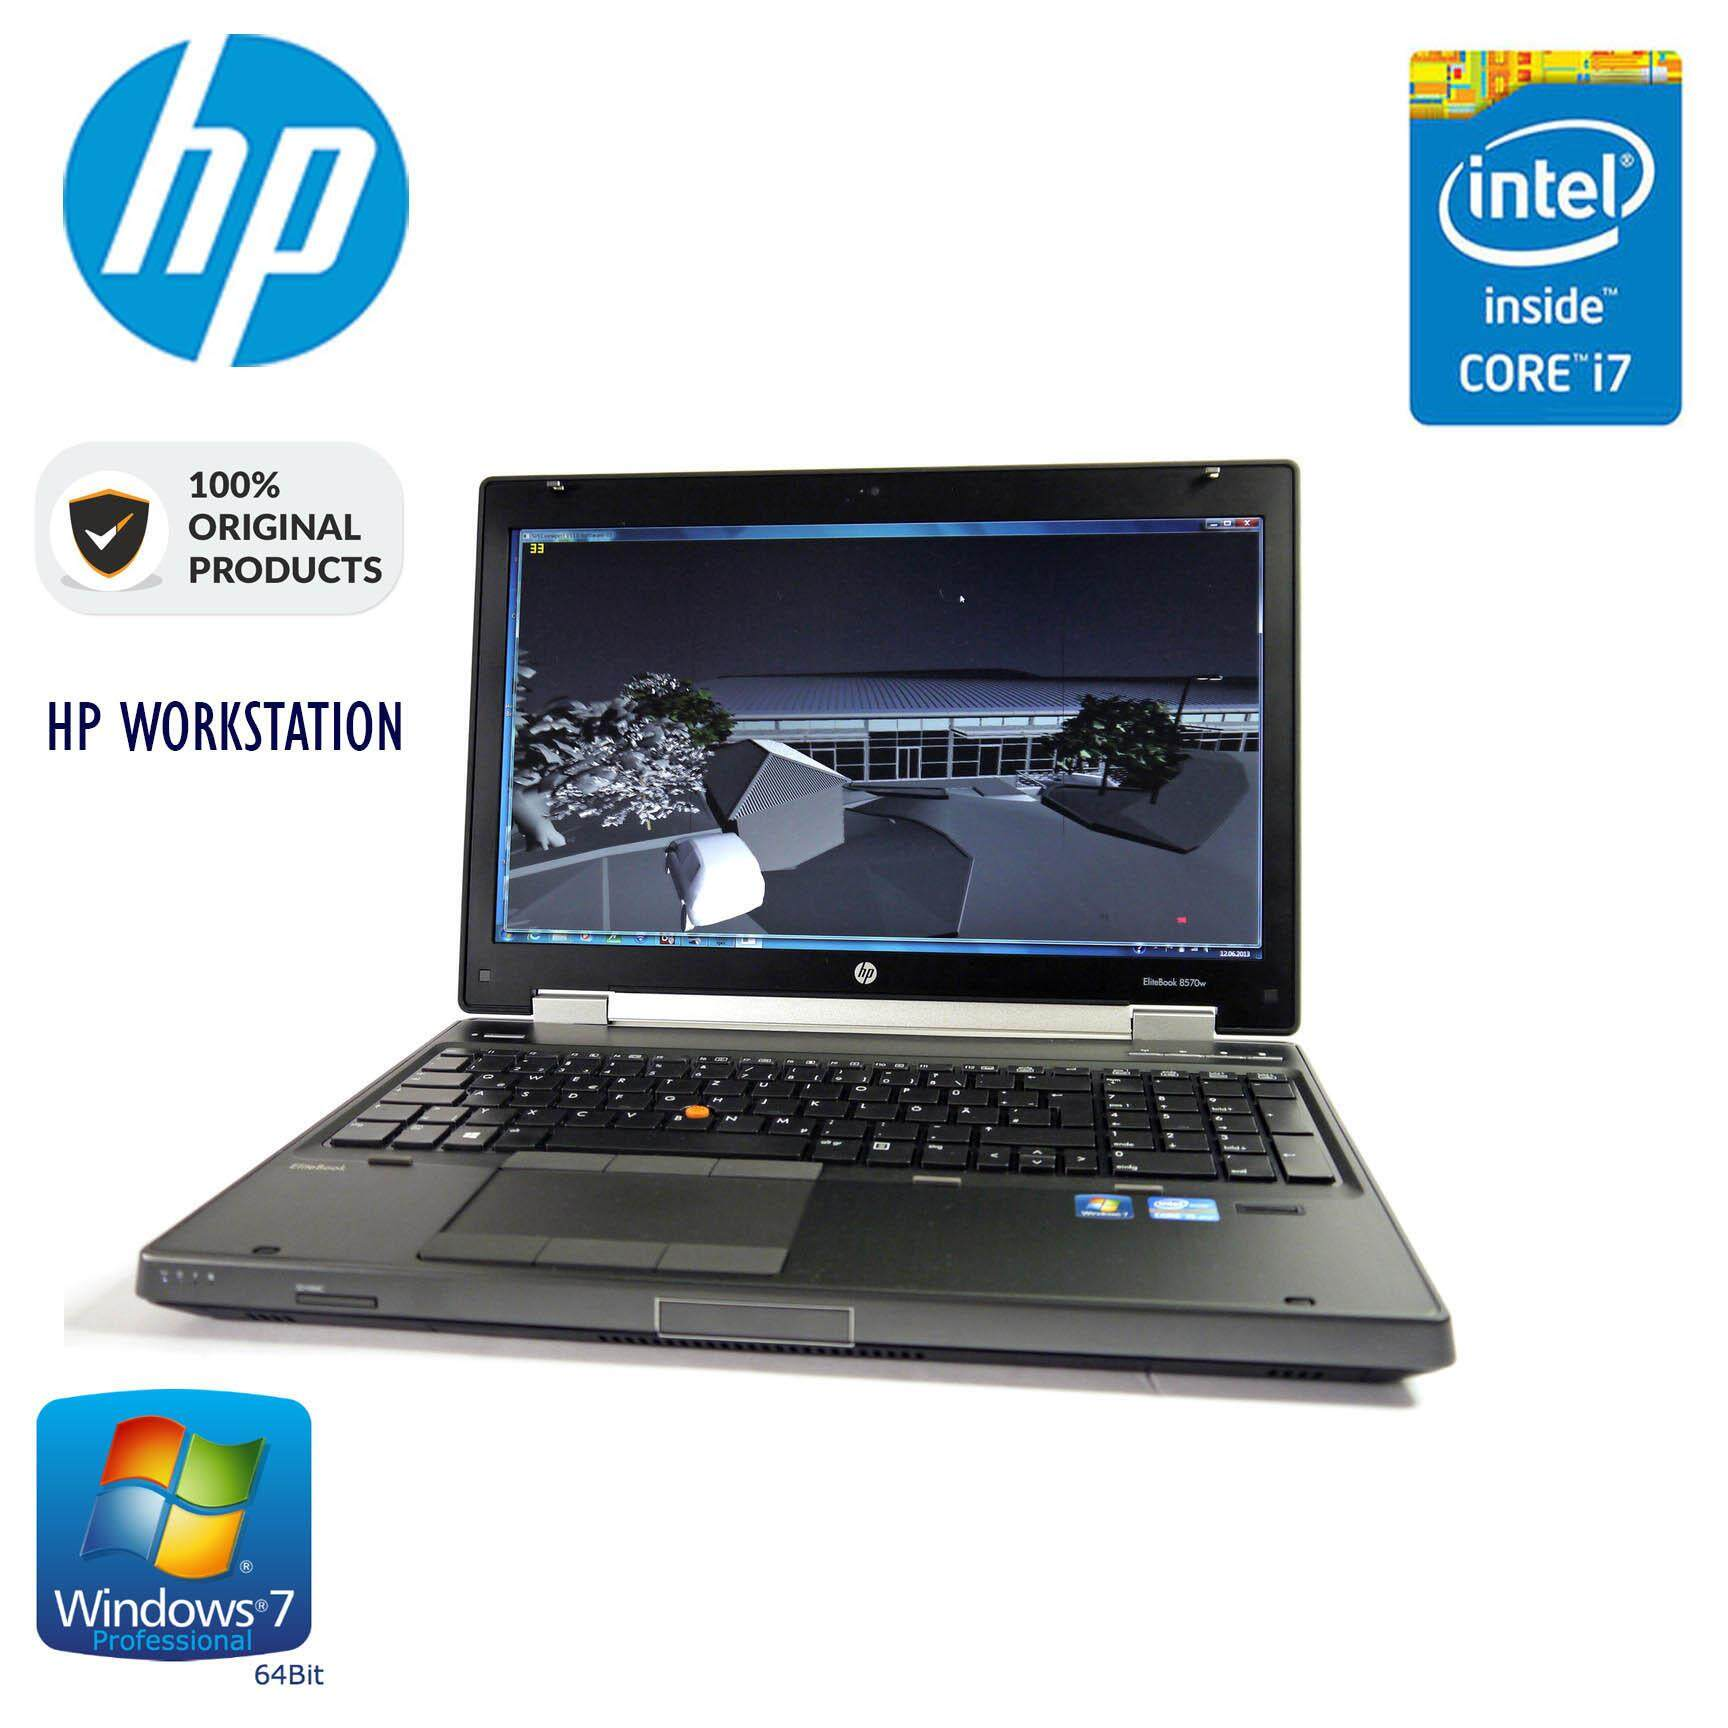 HP WORKSTATION 8770W - 17 INCH (CORE I7 QUAD CORE / 6GB RAM / 1TB HDD) W7 PRO Malaysia